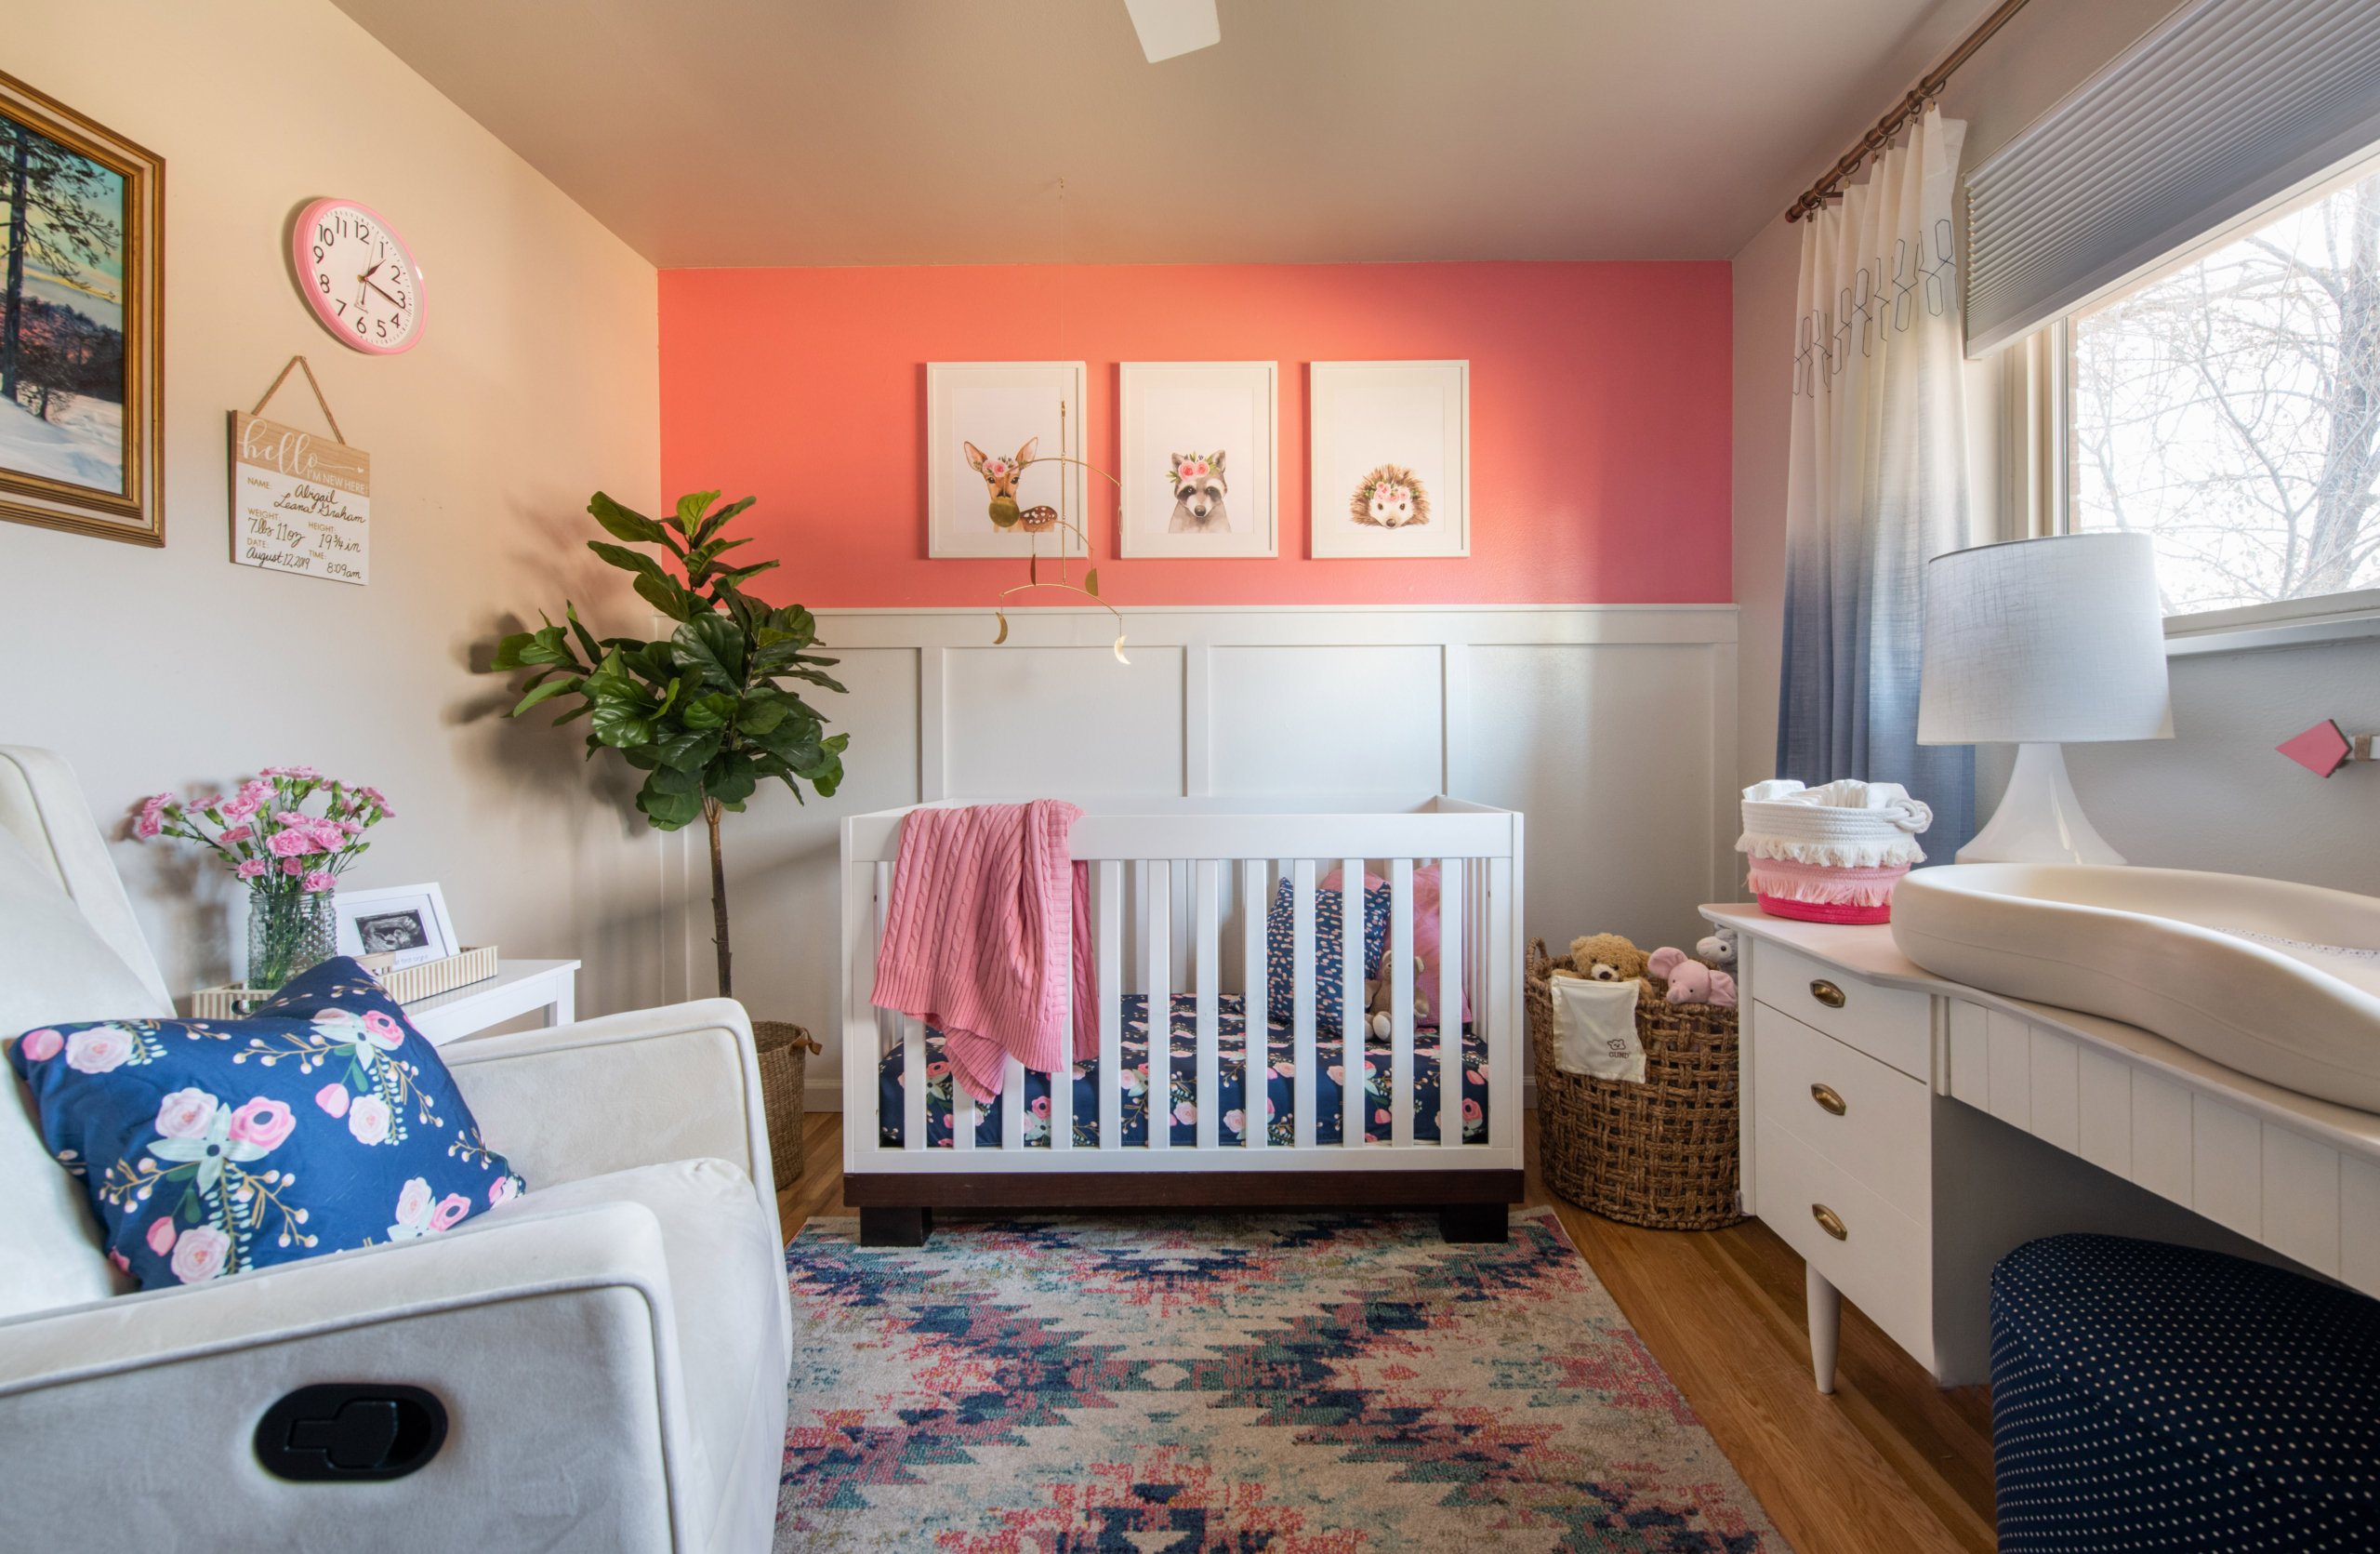 Nursery pink and blue theme with cute animal prints